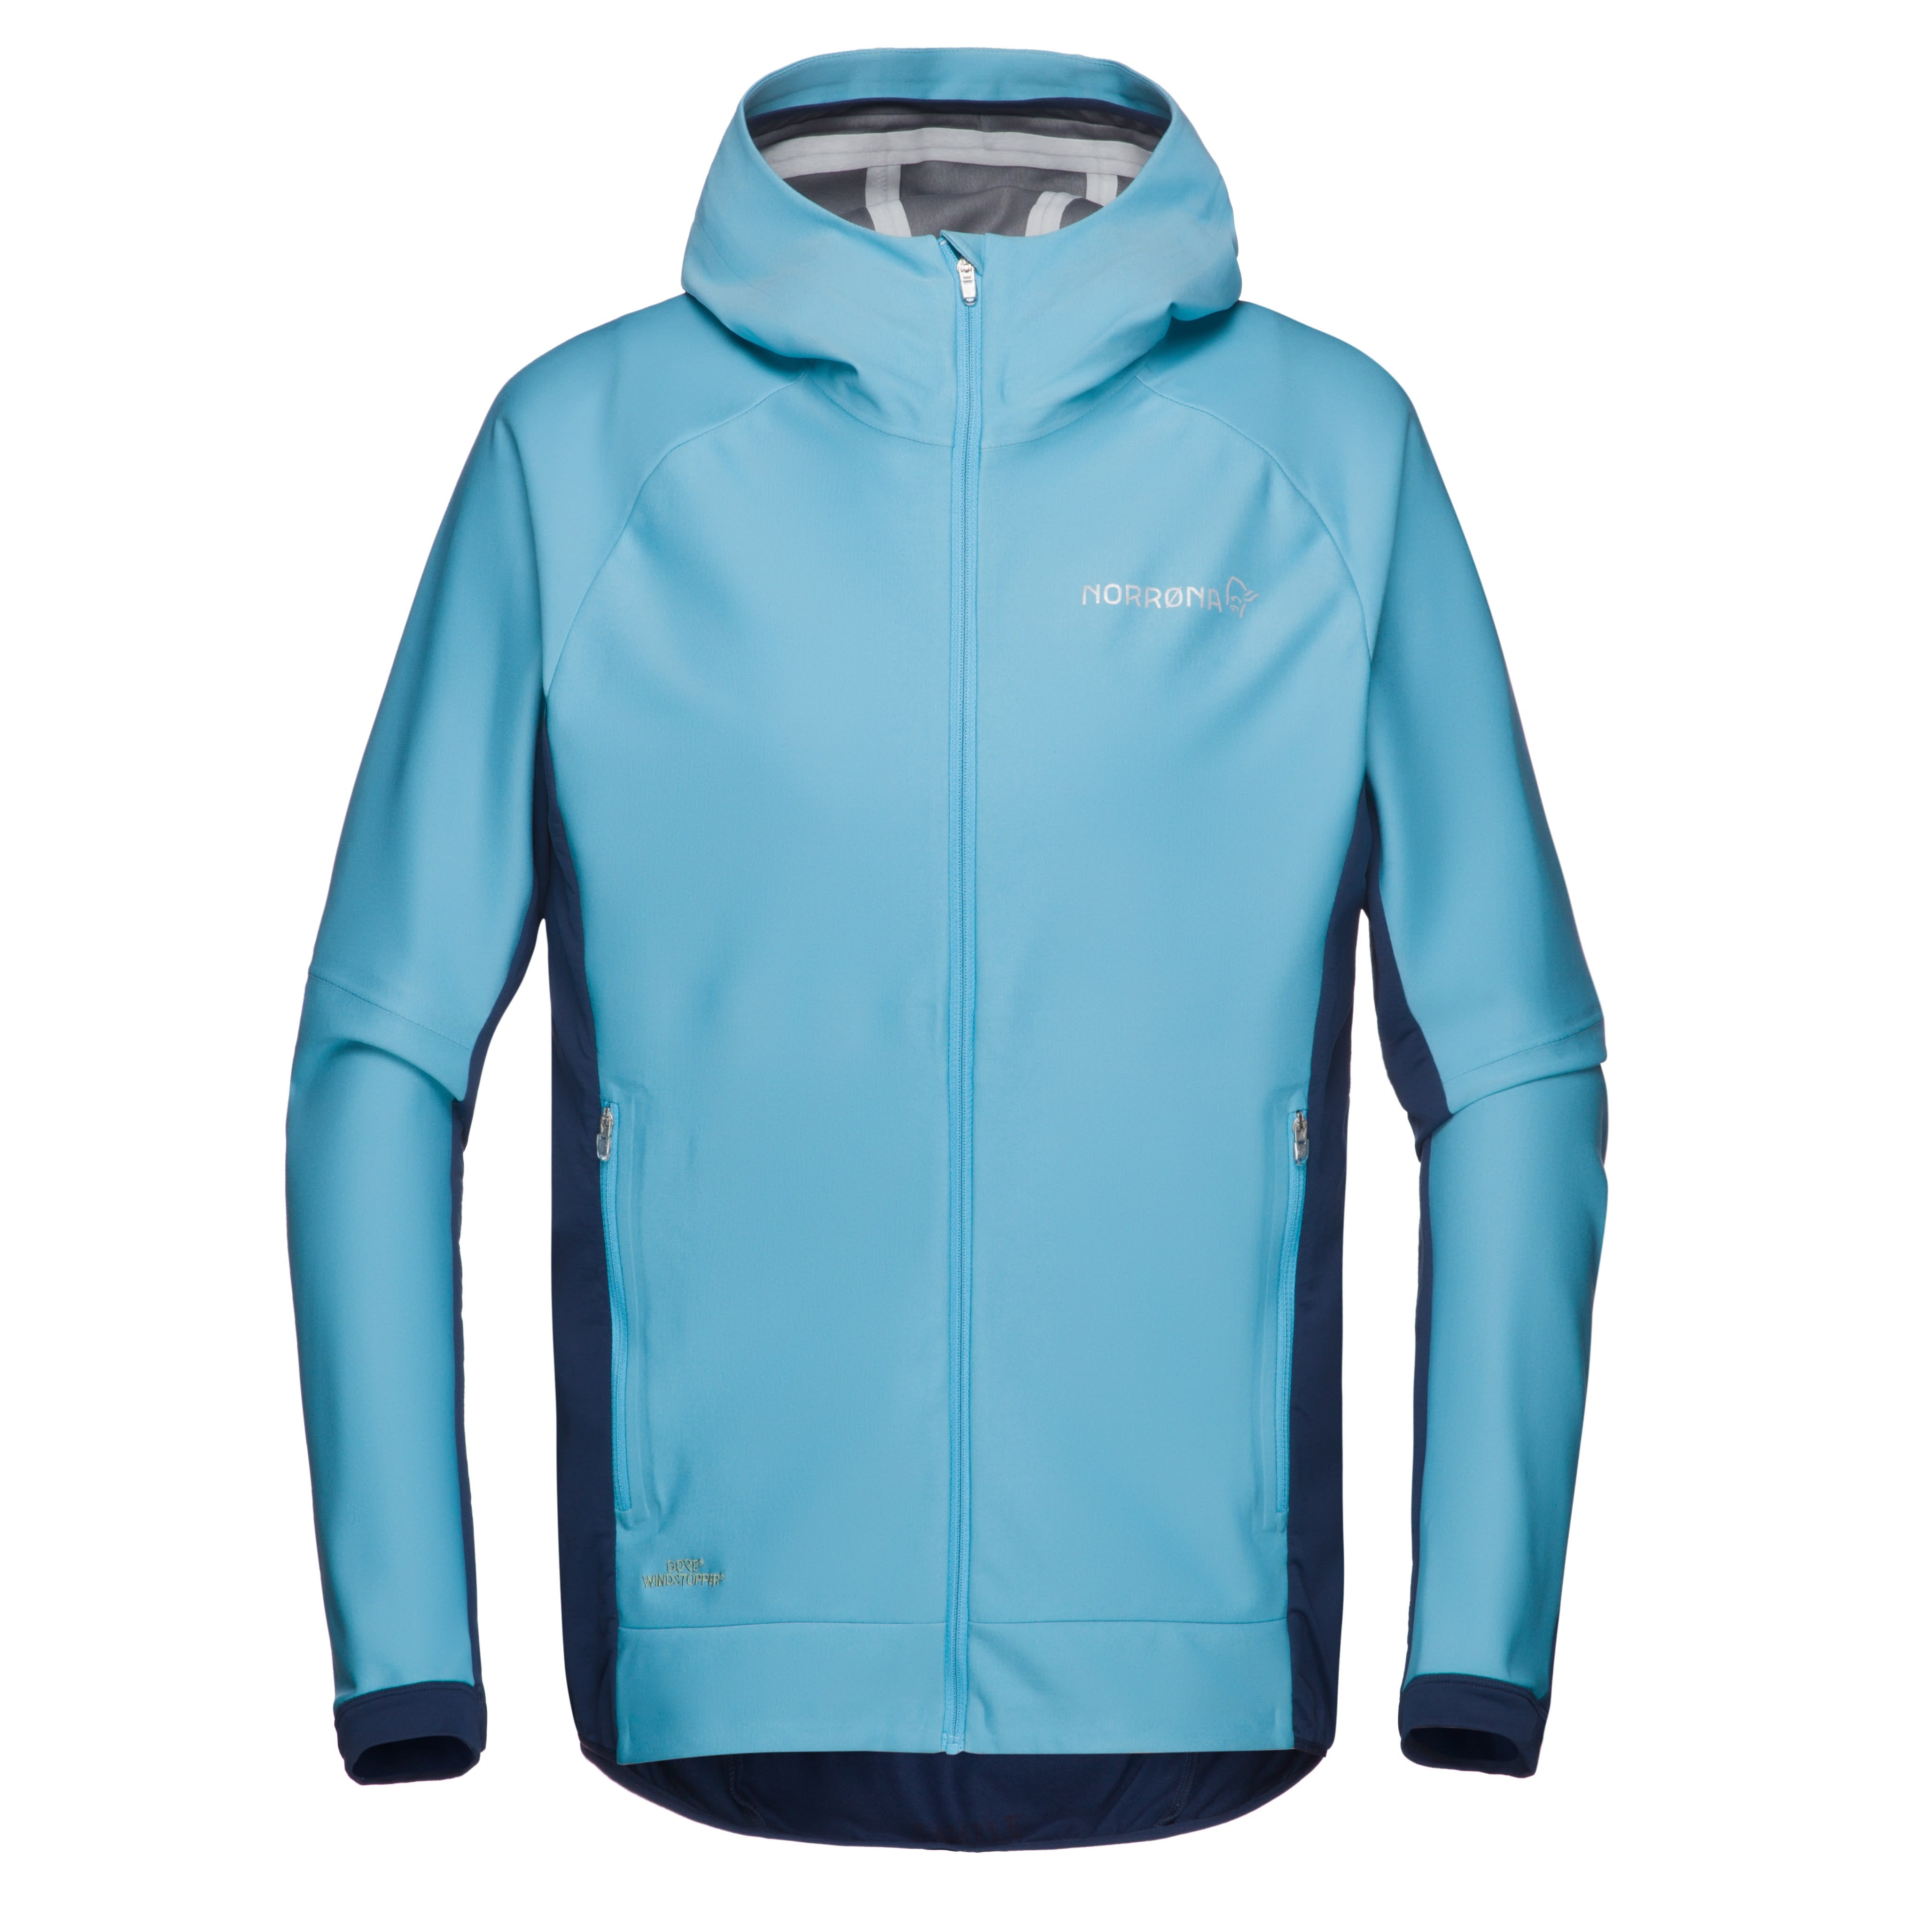 Bitihorn Windstopper Zip-Hood Women, Norrøna